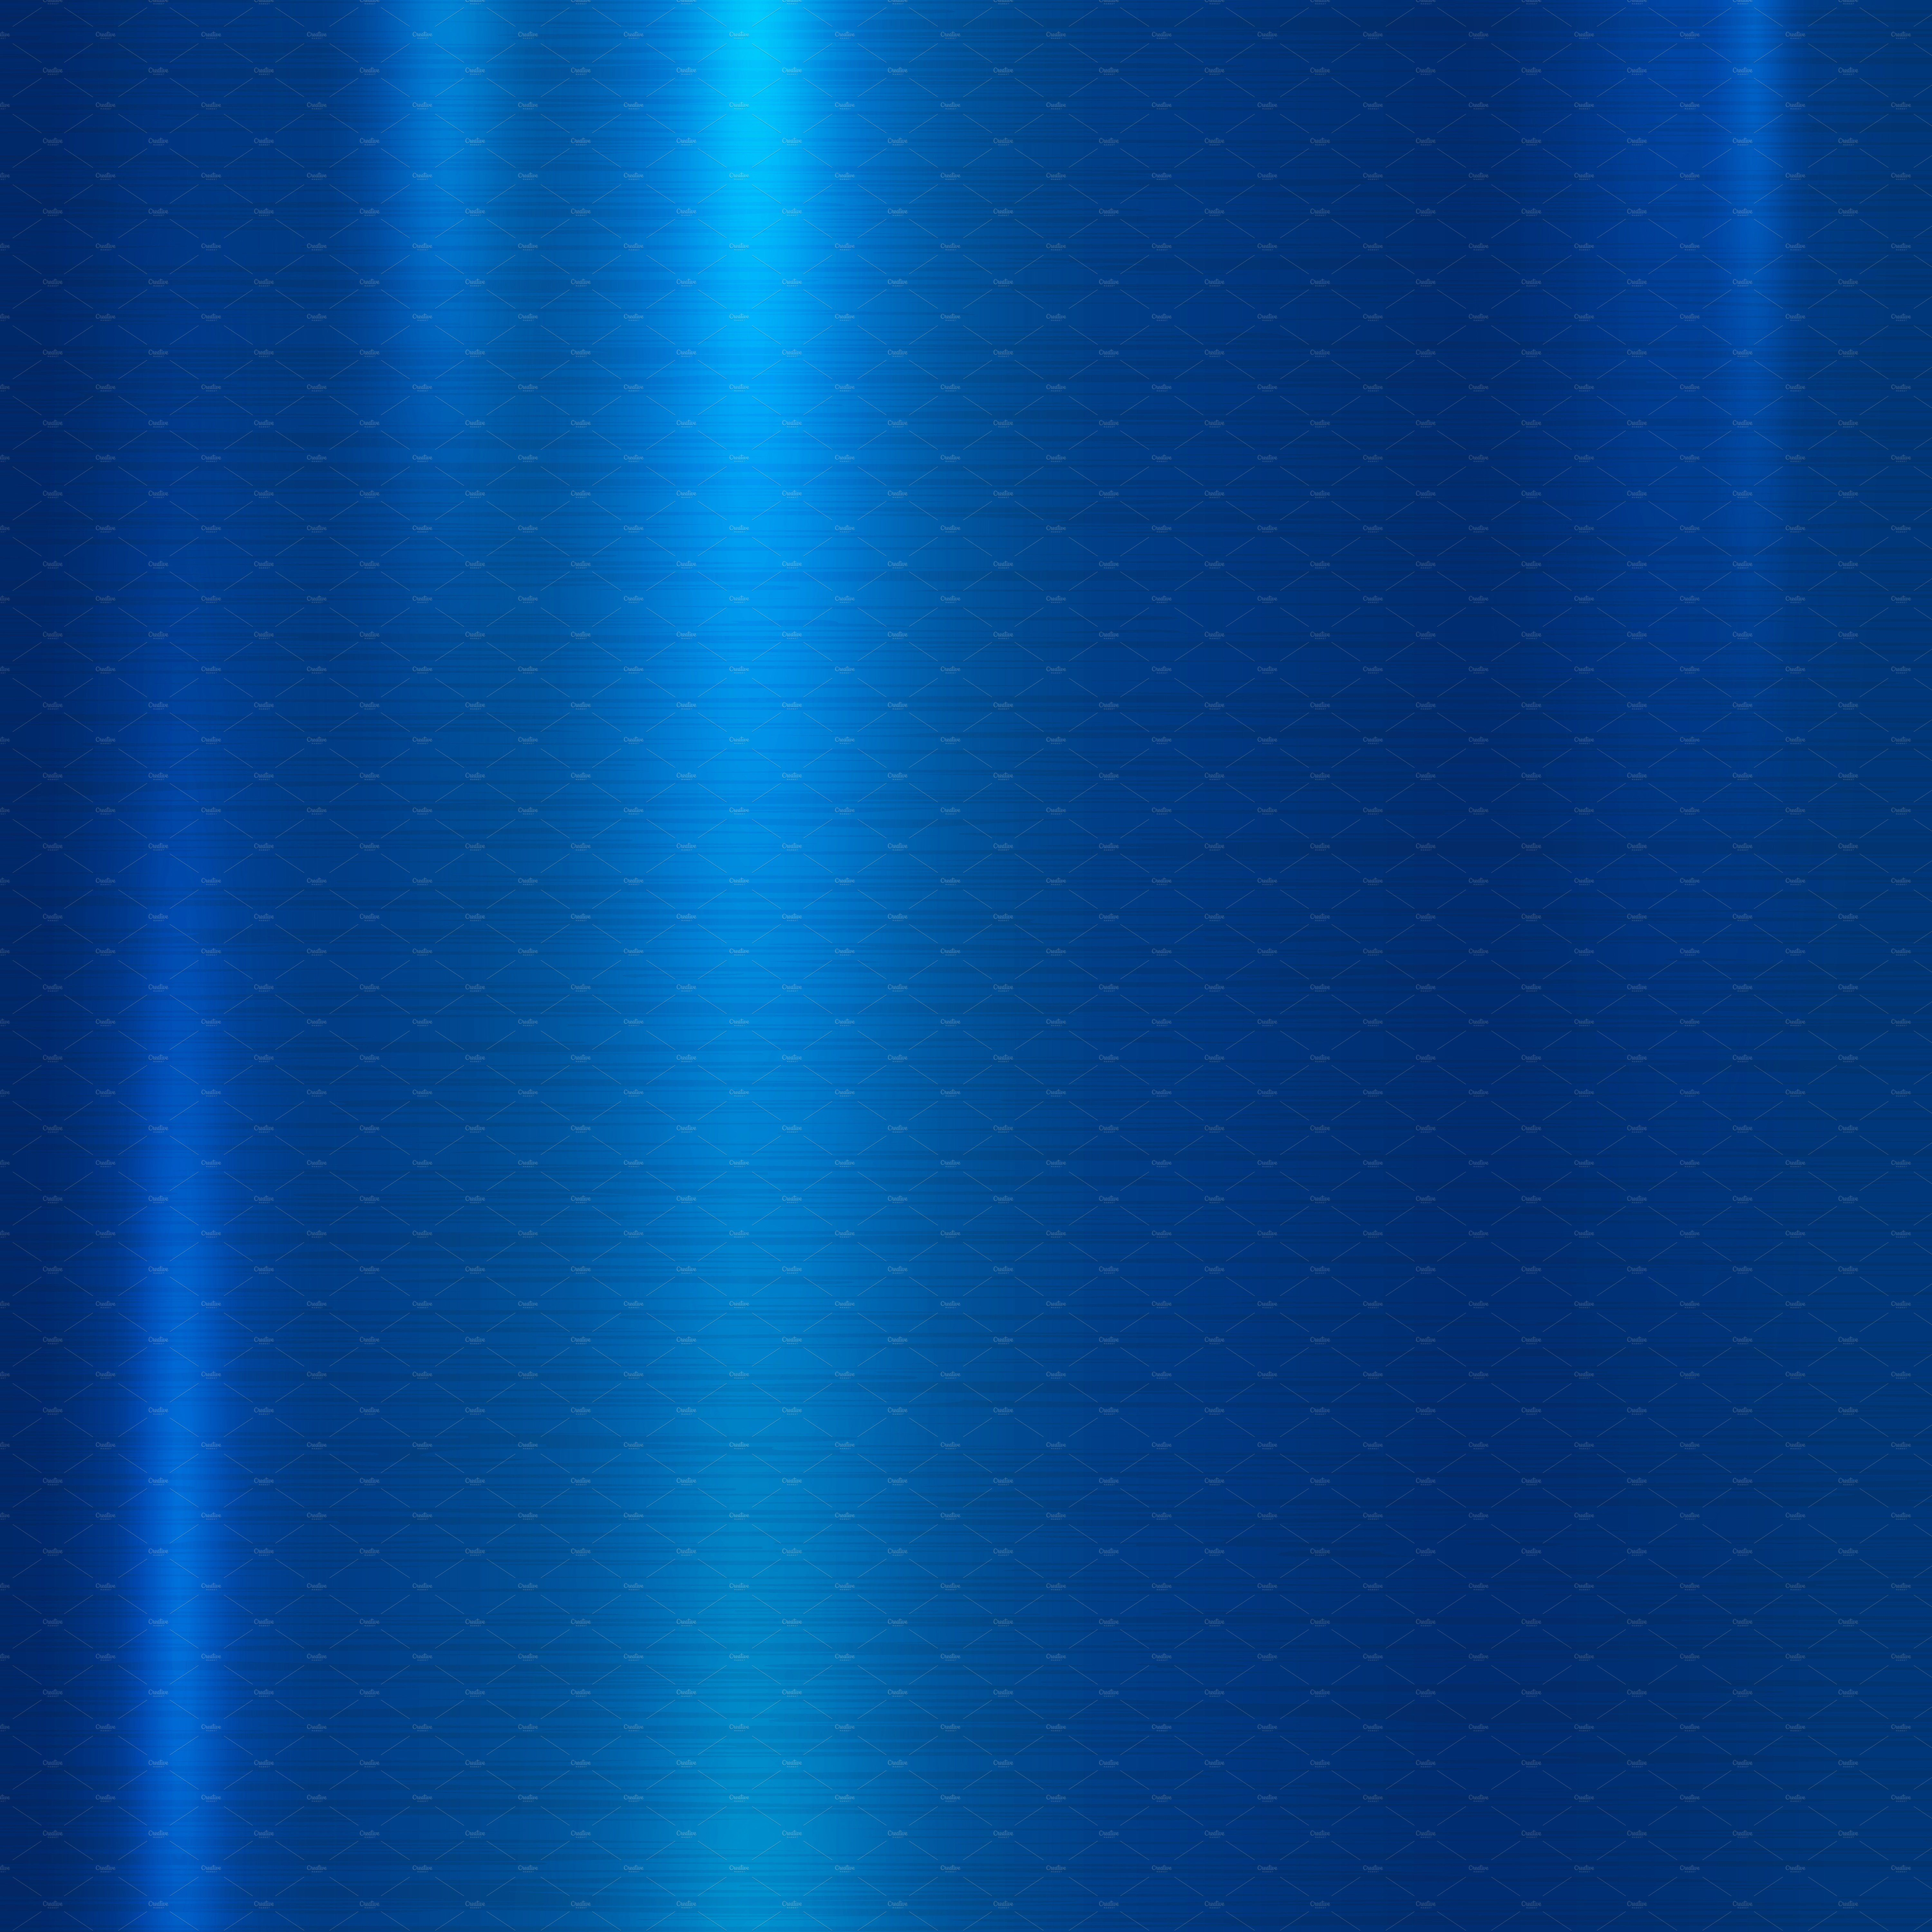 Blue metal texture background